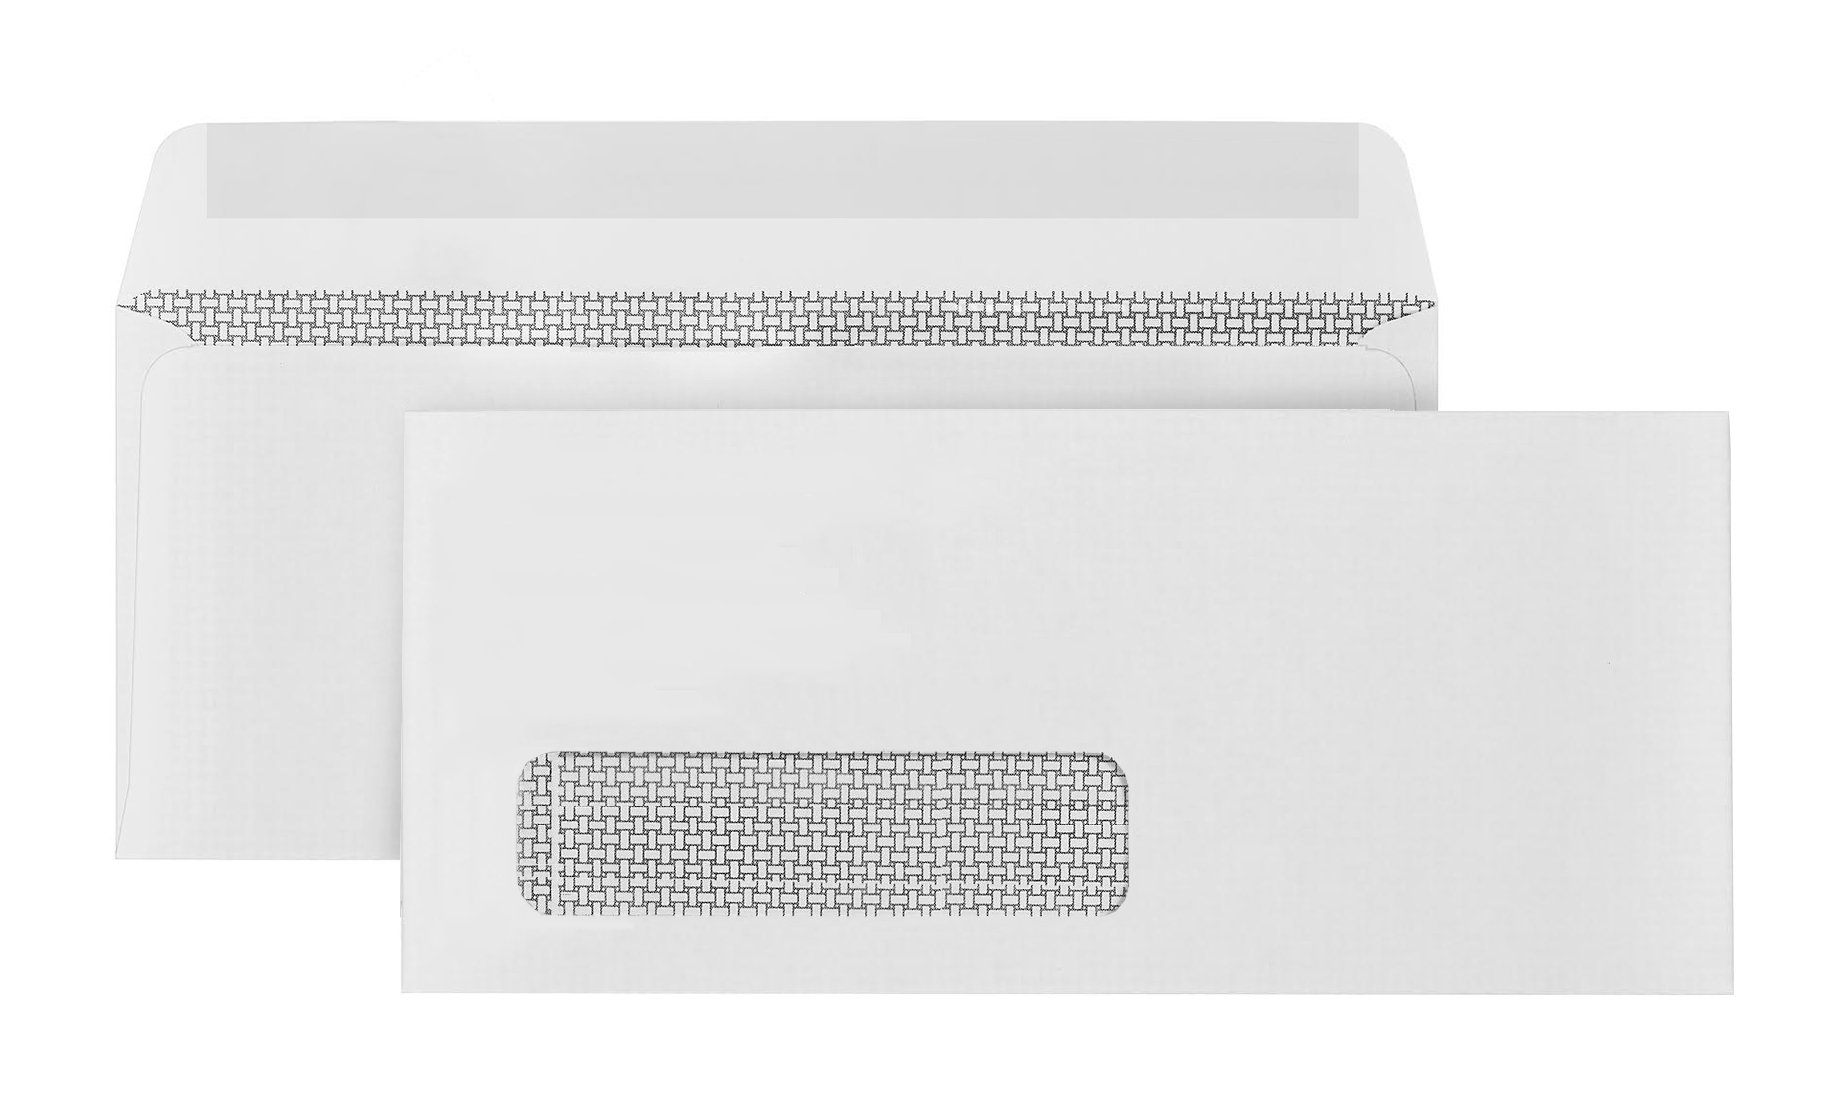 500 #10 Single Window Envelopes-Thick Gummed Seal-Designed for secure mailing of Quickbooks checks, invoices, business statements, personal letters - 4 1/8 x 9 1/2